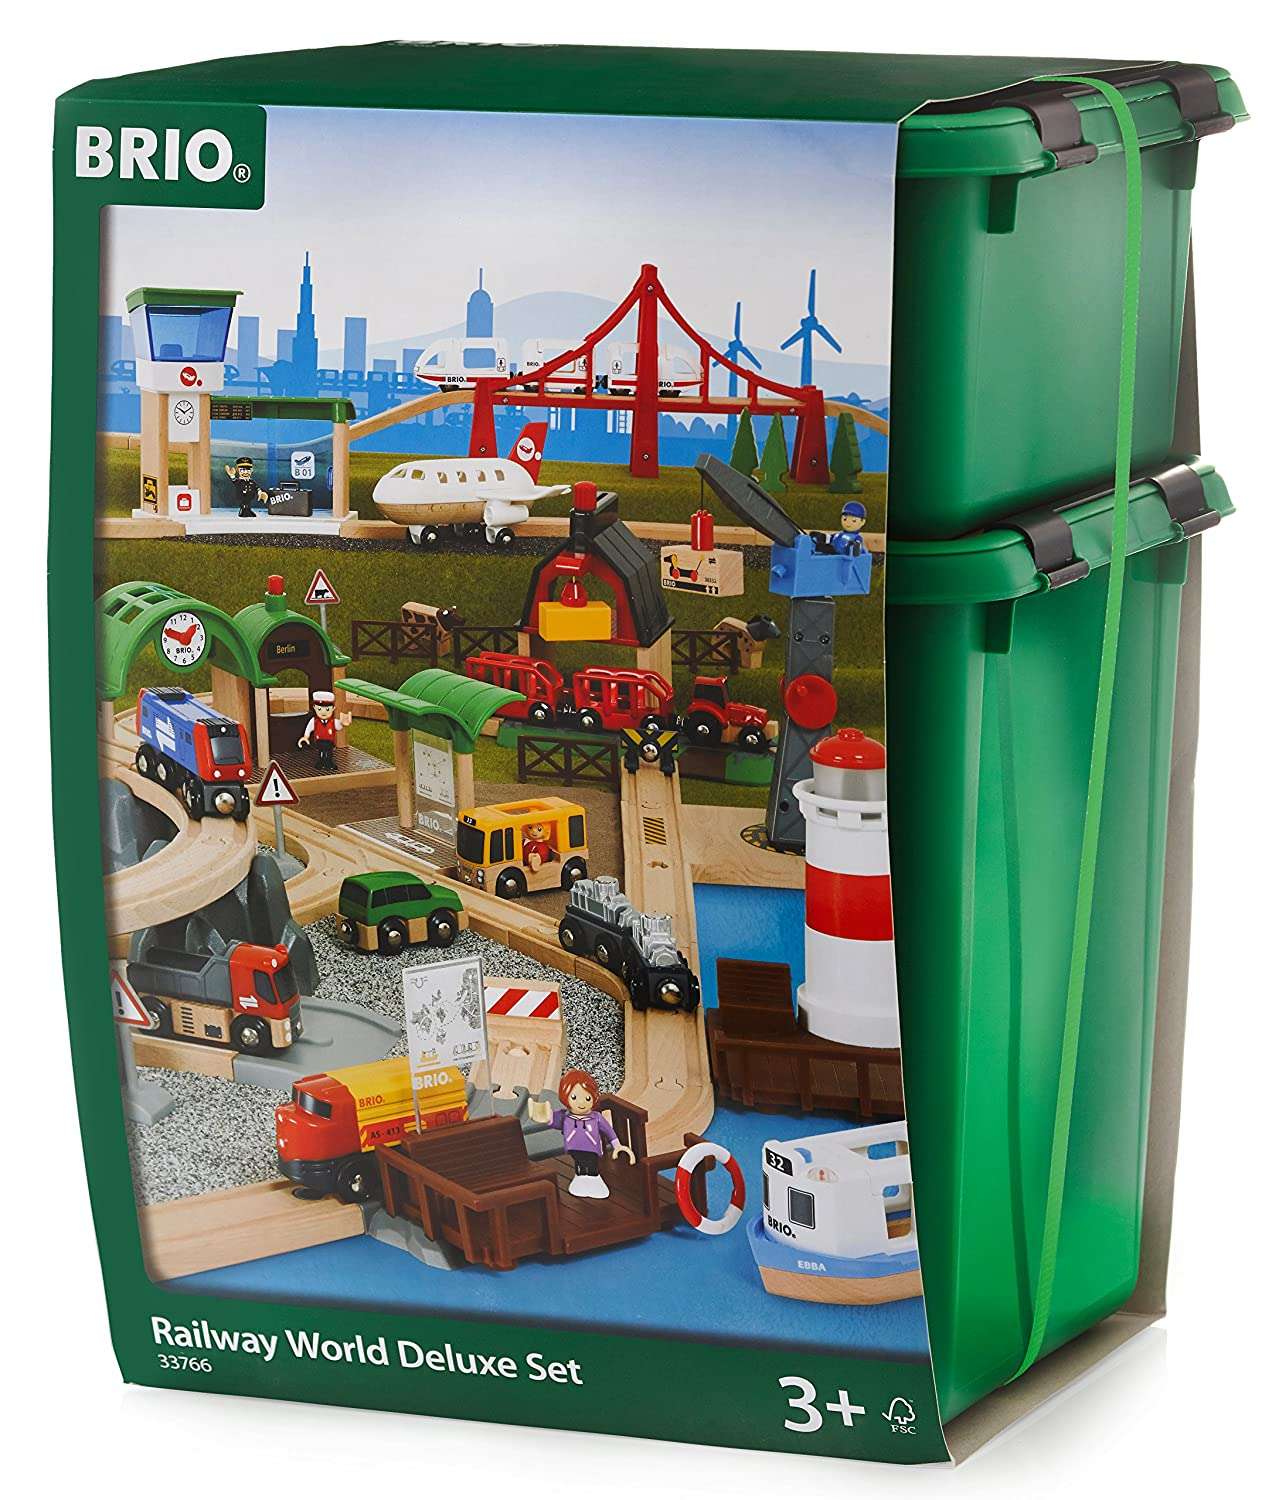 Brio Railway World Deluxe Set Ravensburger 33766